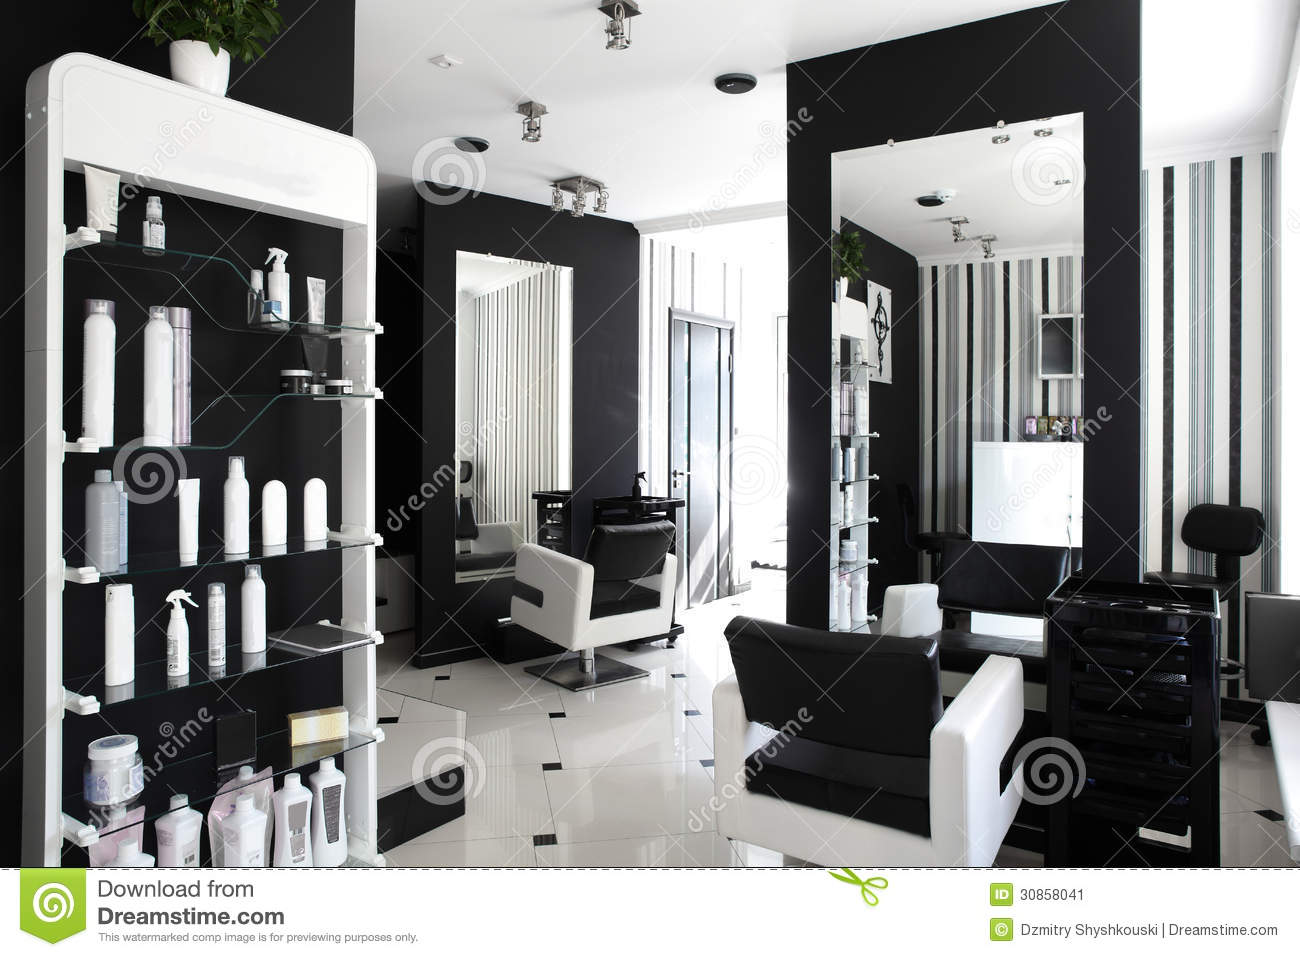 Interior Of Modern Beauty Salon Stock Image - Image: 30858041